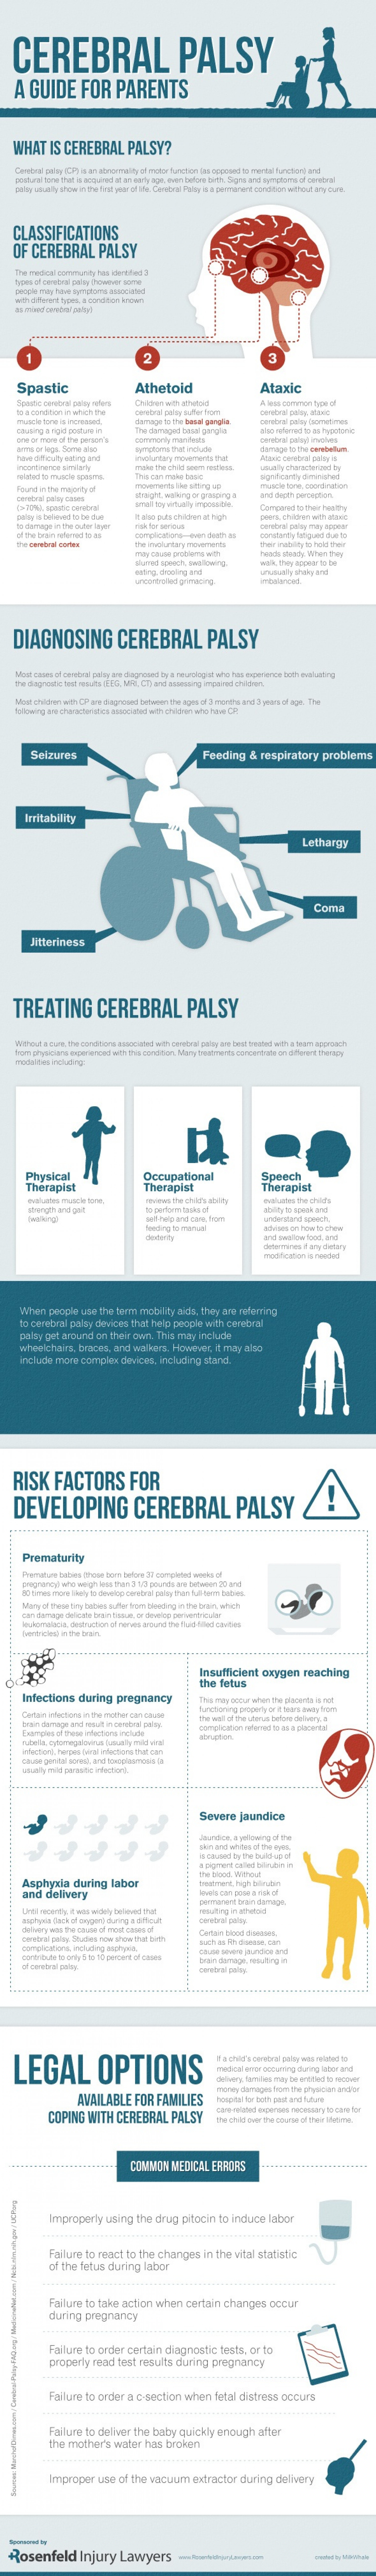 Cerebral Palsy - A Gude For Parents. Infographic